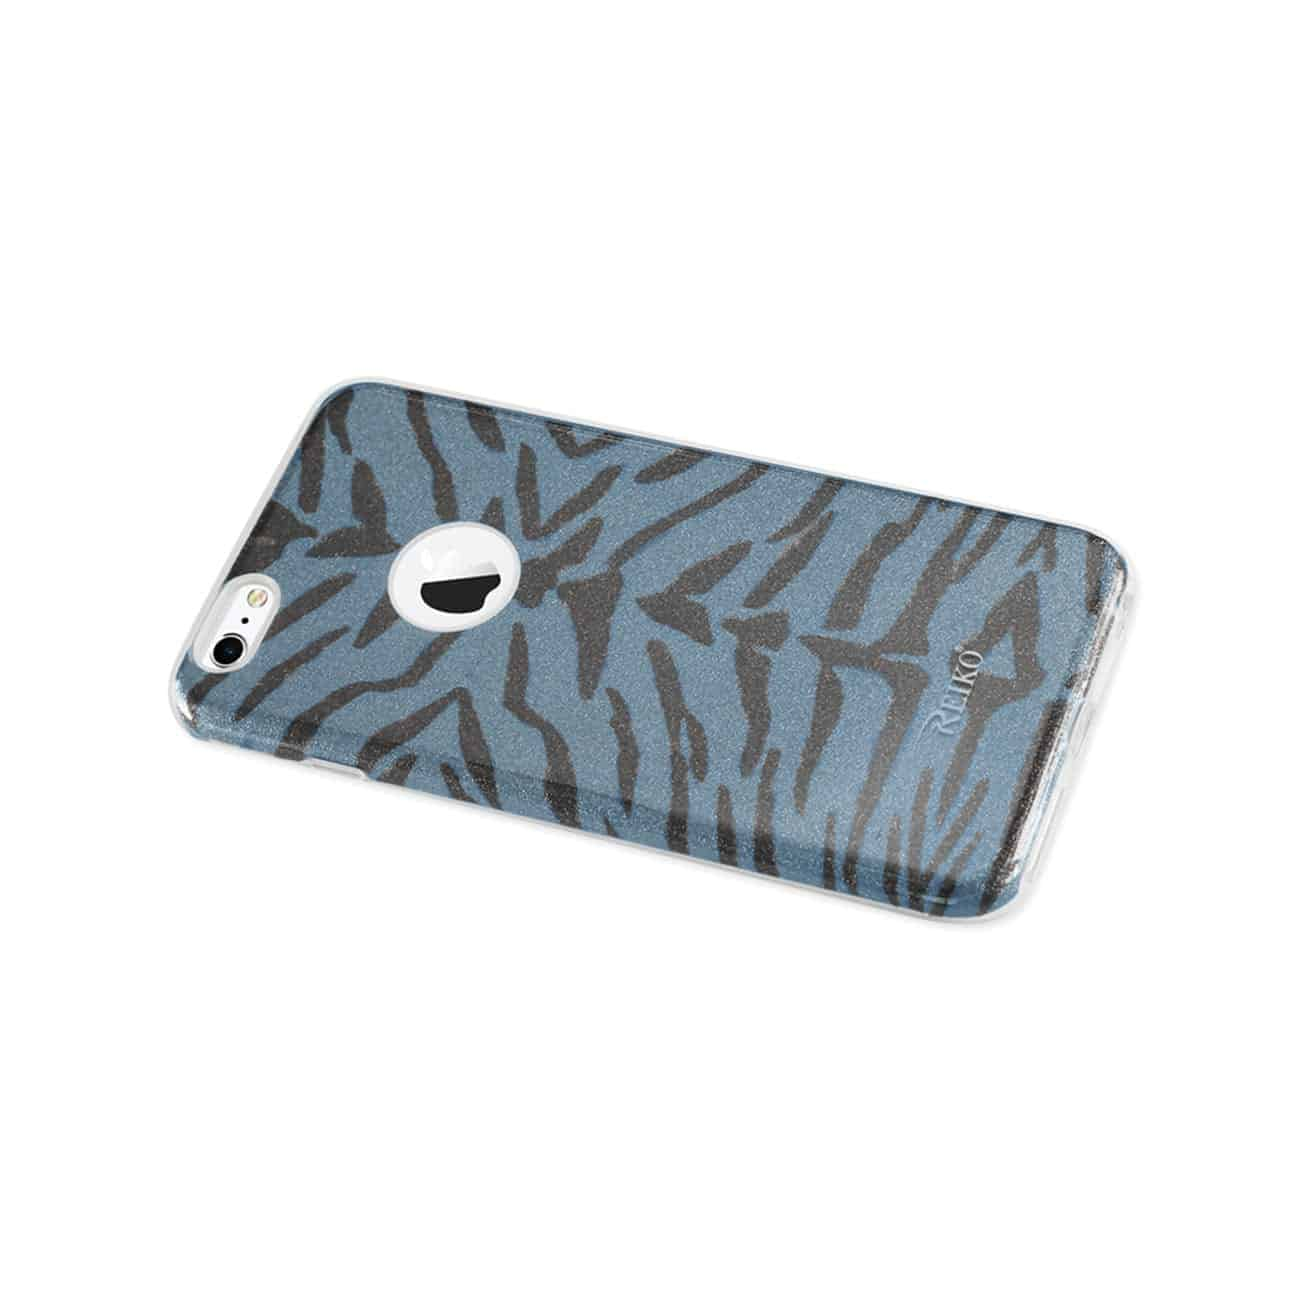 IPHONE 6 PLUS/ 6S PLUS SHINE GLITTER SHIMMER TIGER STRIPE HYBRID CASE IN BLUE